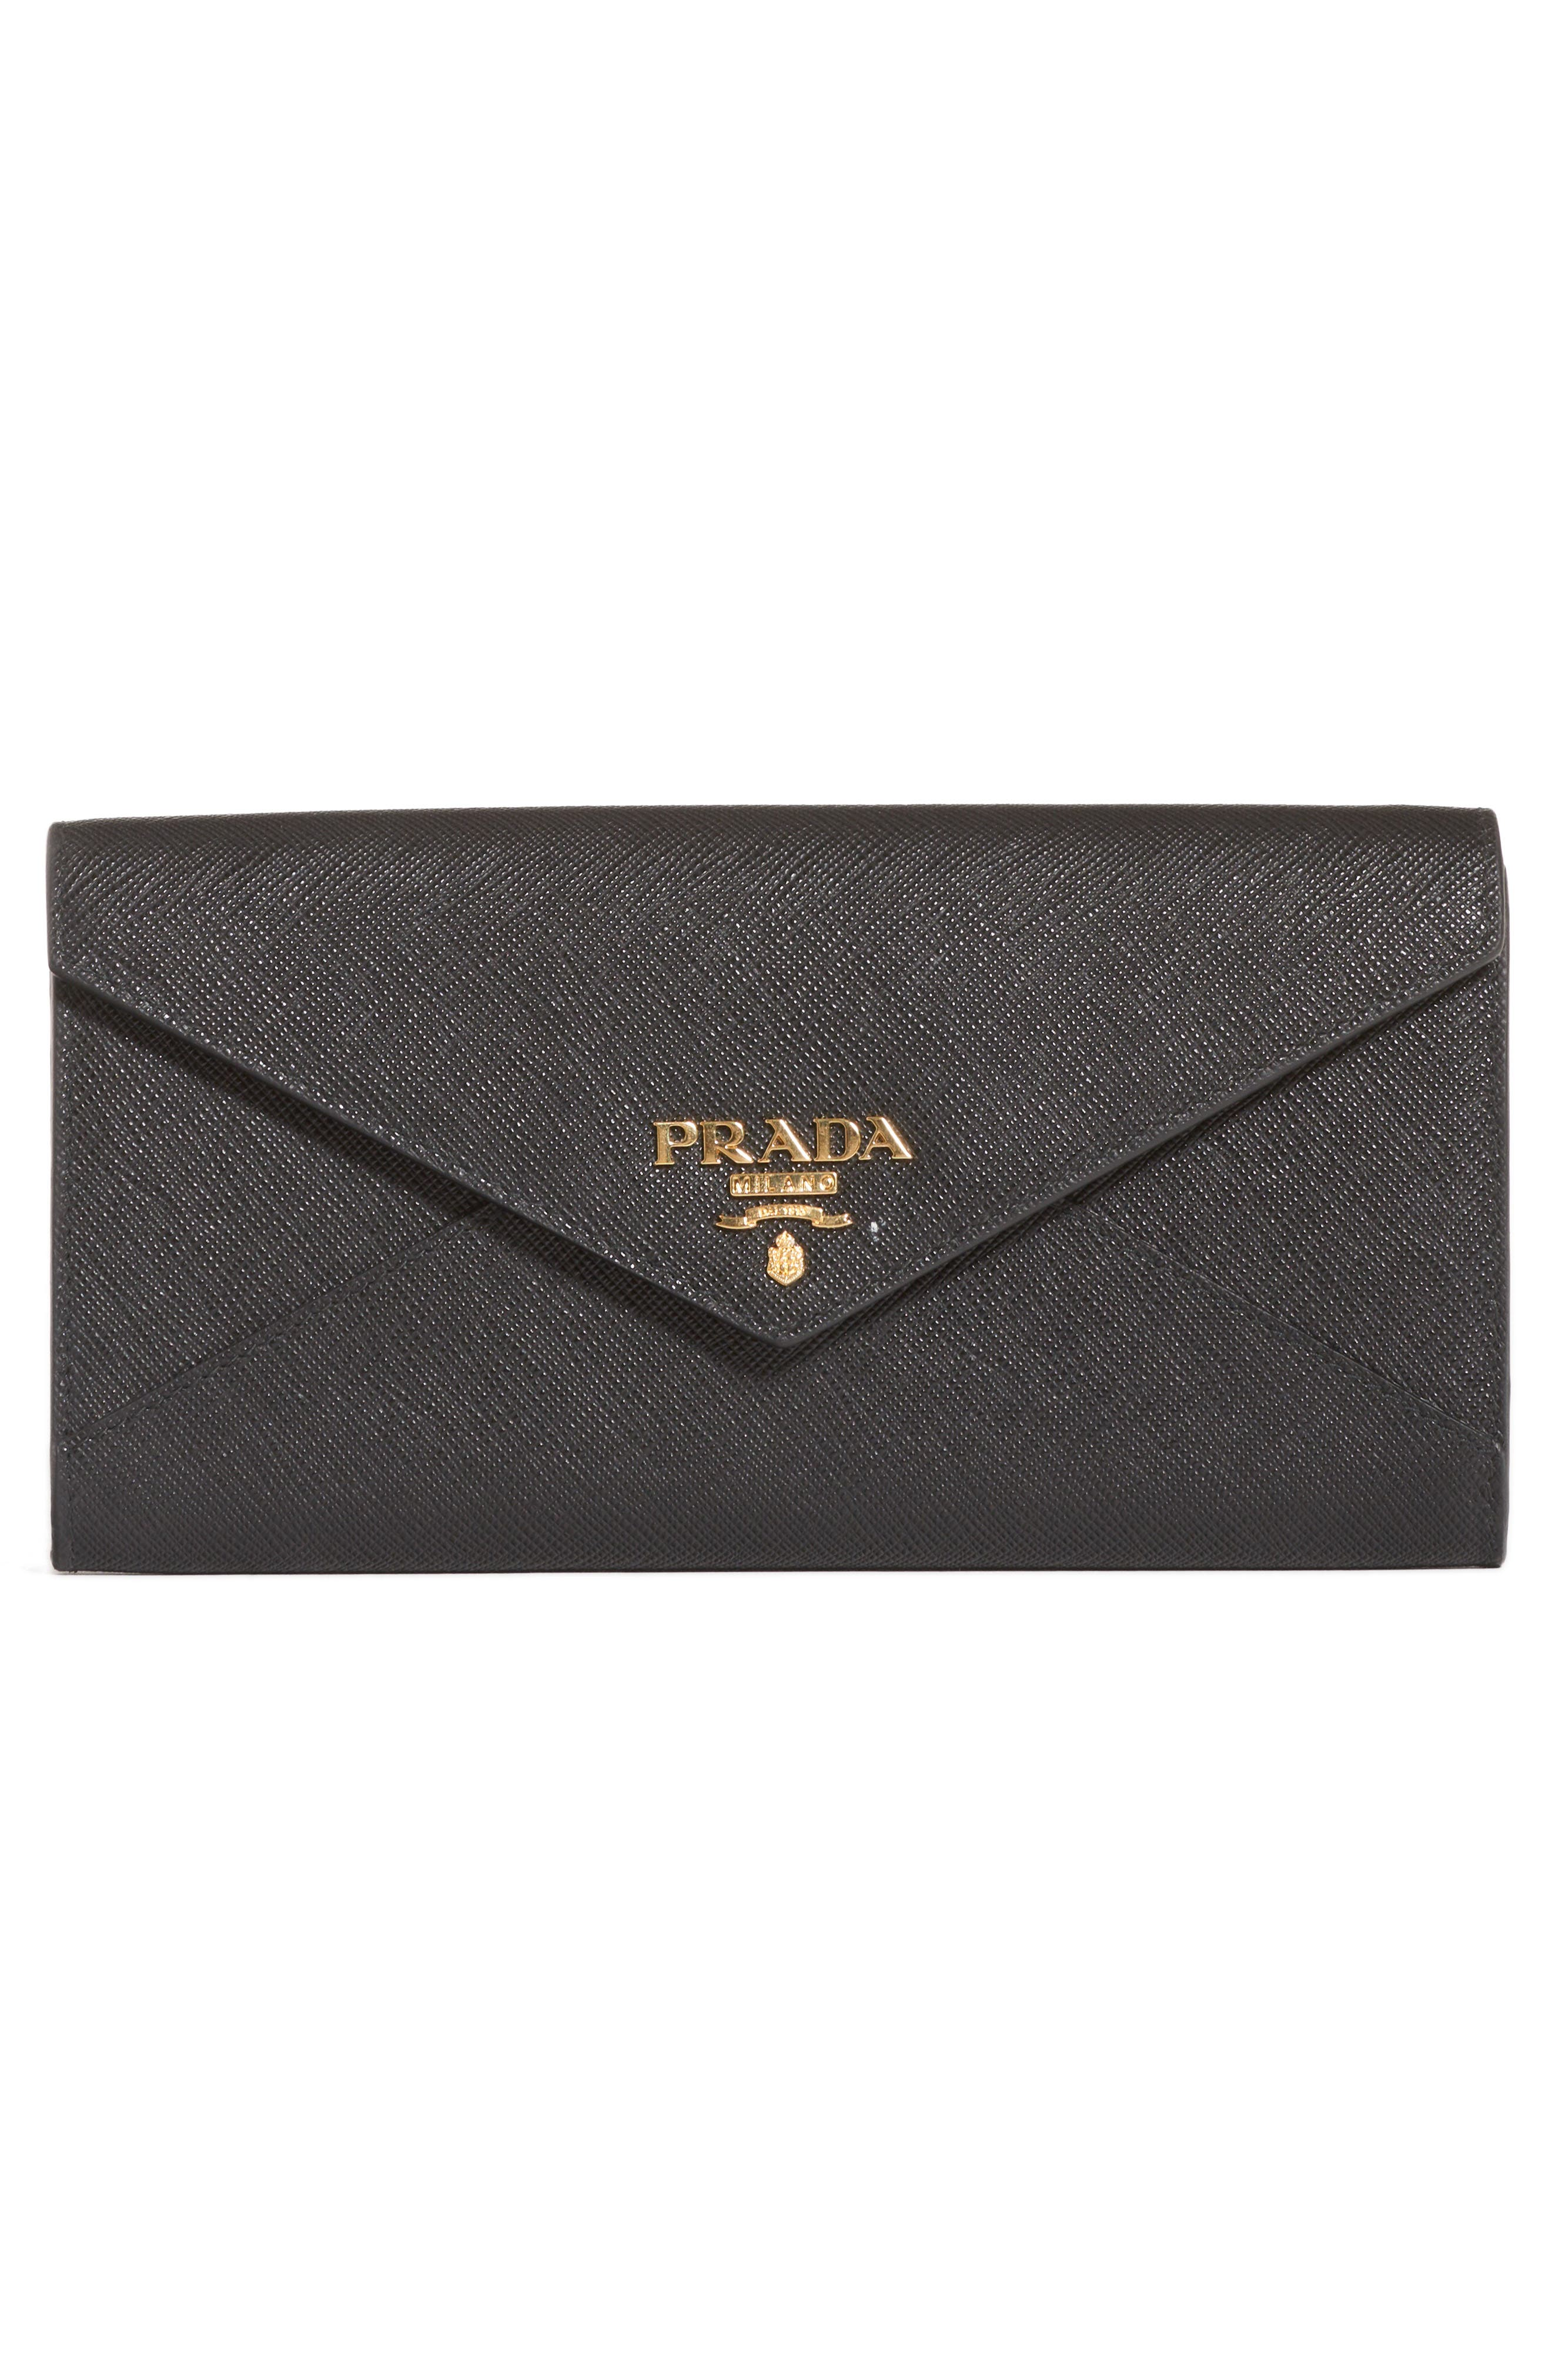 Saffiano Leather Envelope Wristlet,                             Alternate thumbnail 2, color,                             001